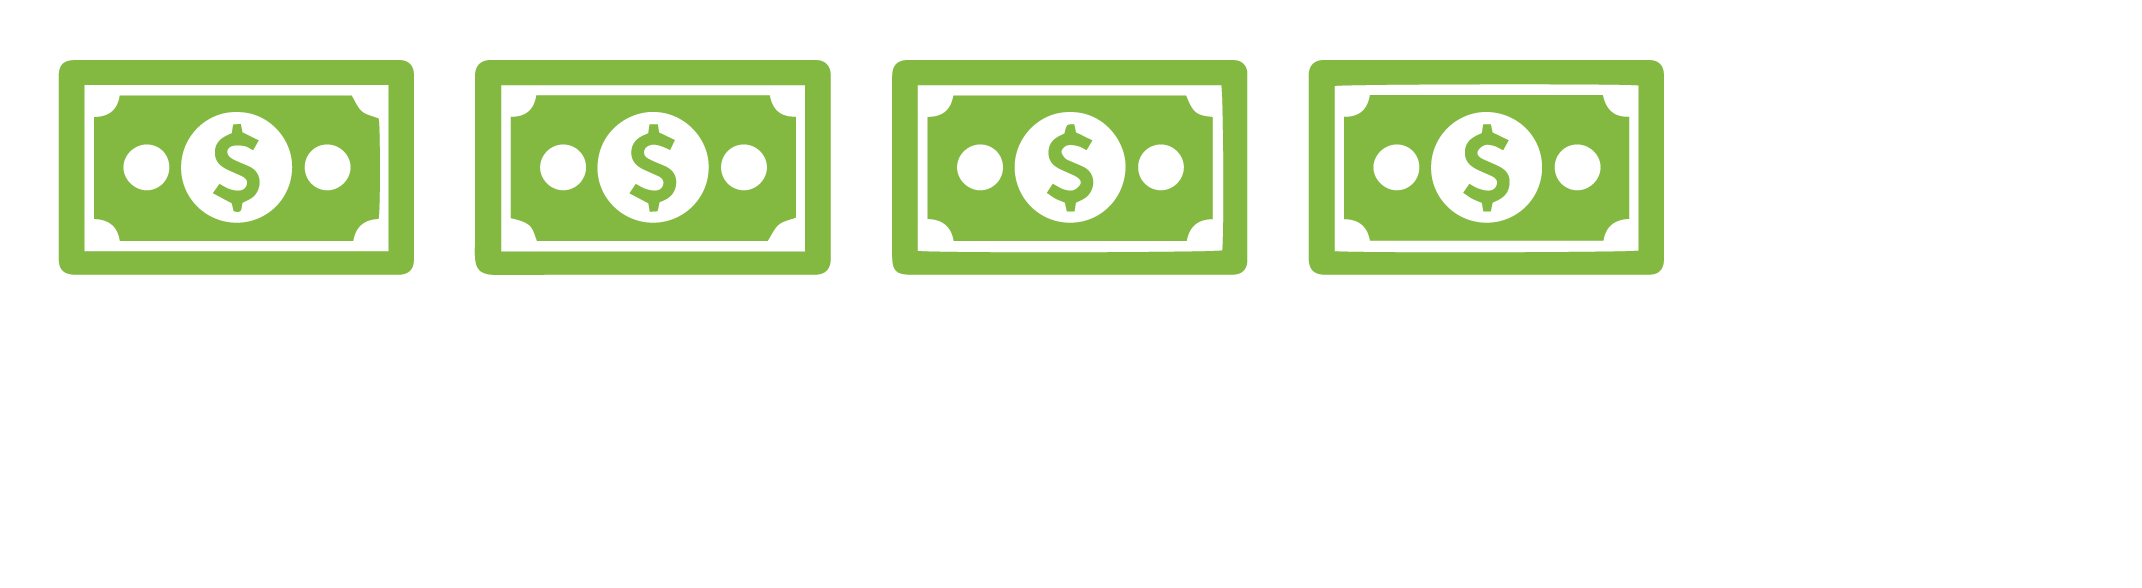 moneyicon-03.png